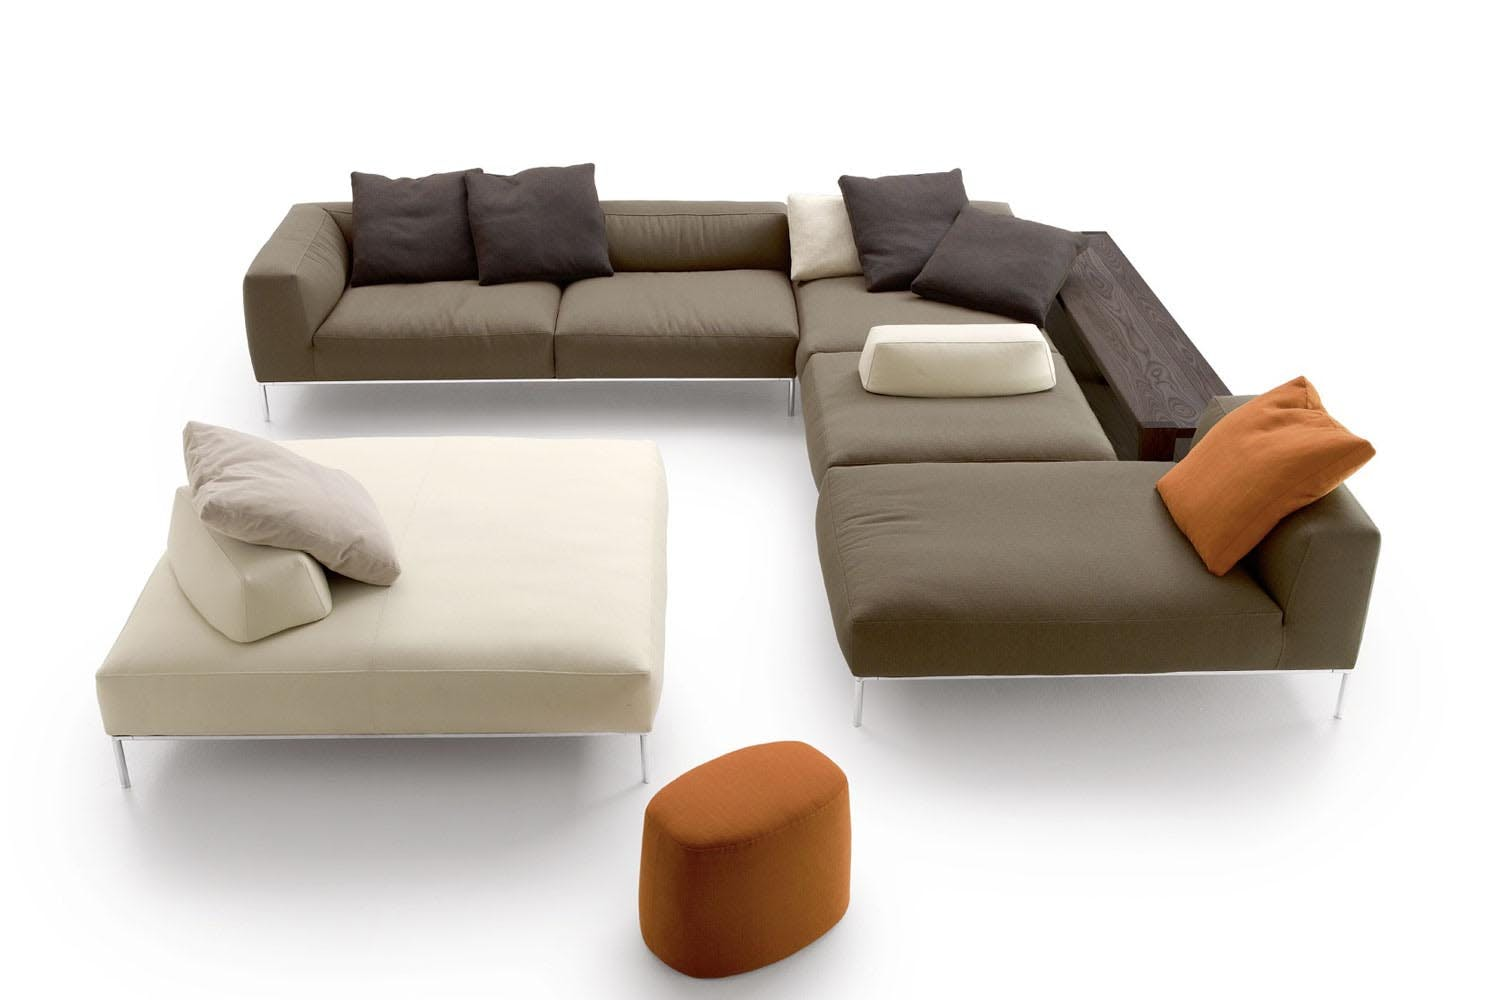 frank 2012 sofa by antonio citterio for b b italia space furniture. Black Bedroom Furniture Sets. Home Design Ideas